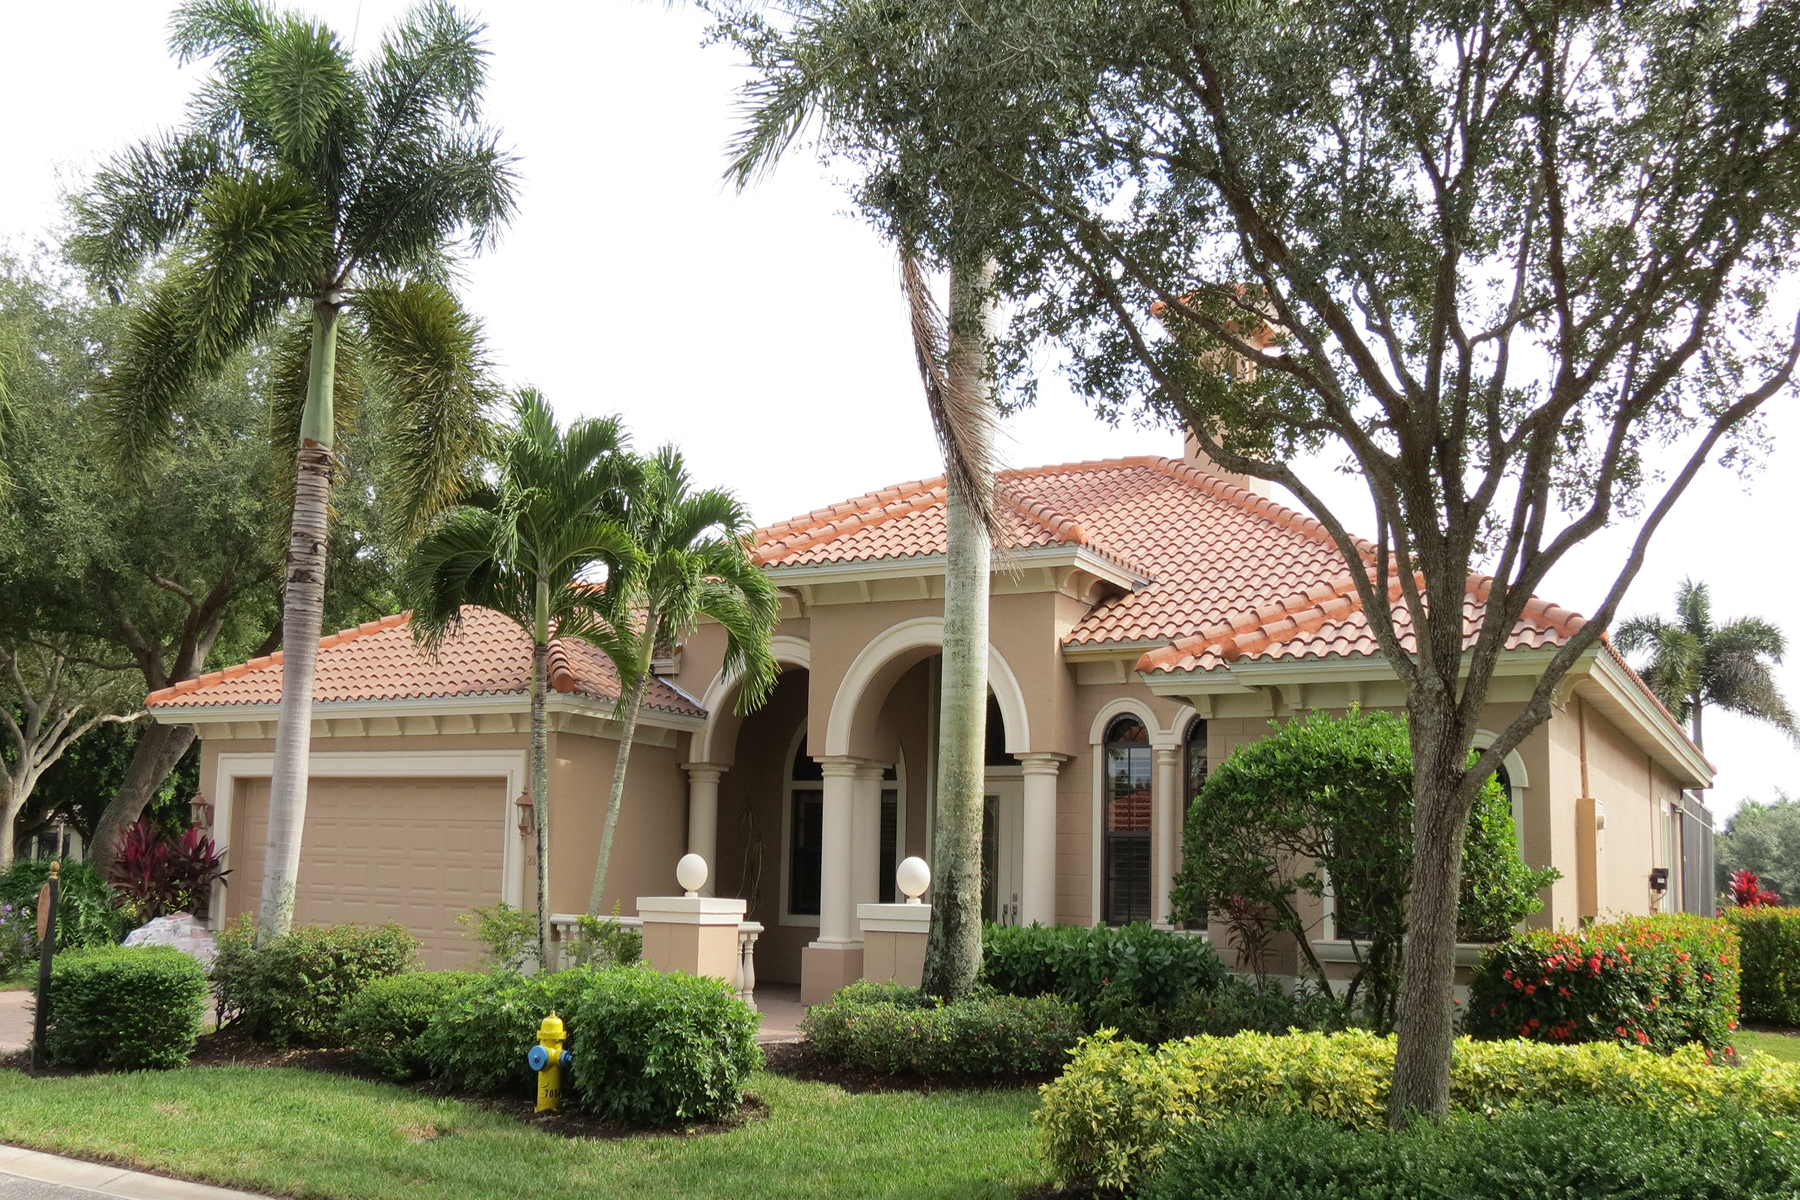 Single Family Homes for Sale at PALMIRA GOLF AND COUNTRY CLUB - Villa Tuscany 28497 Azzili Way Bonita Springs, Florida 34135 United States